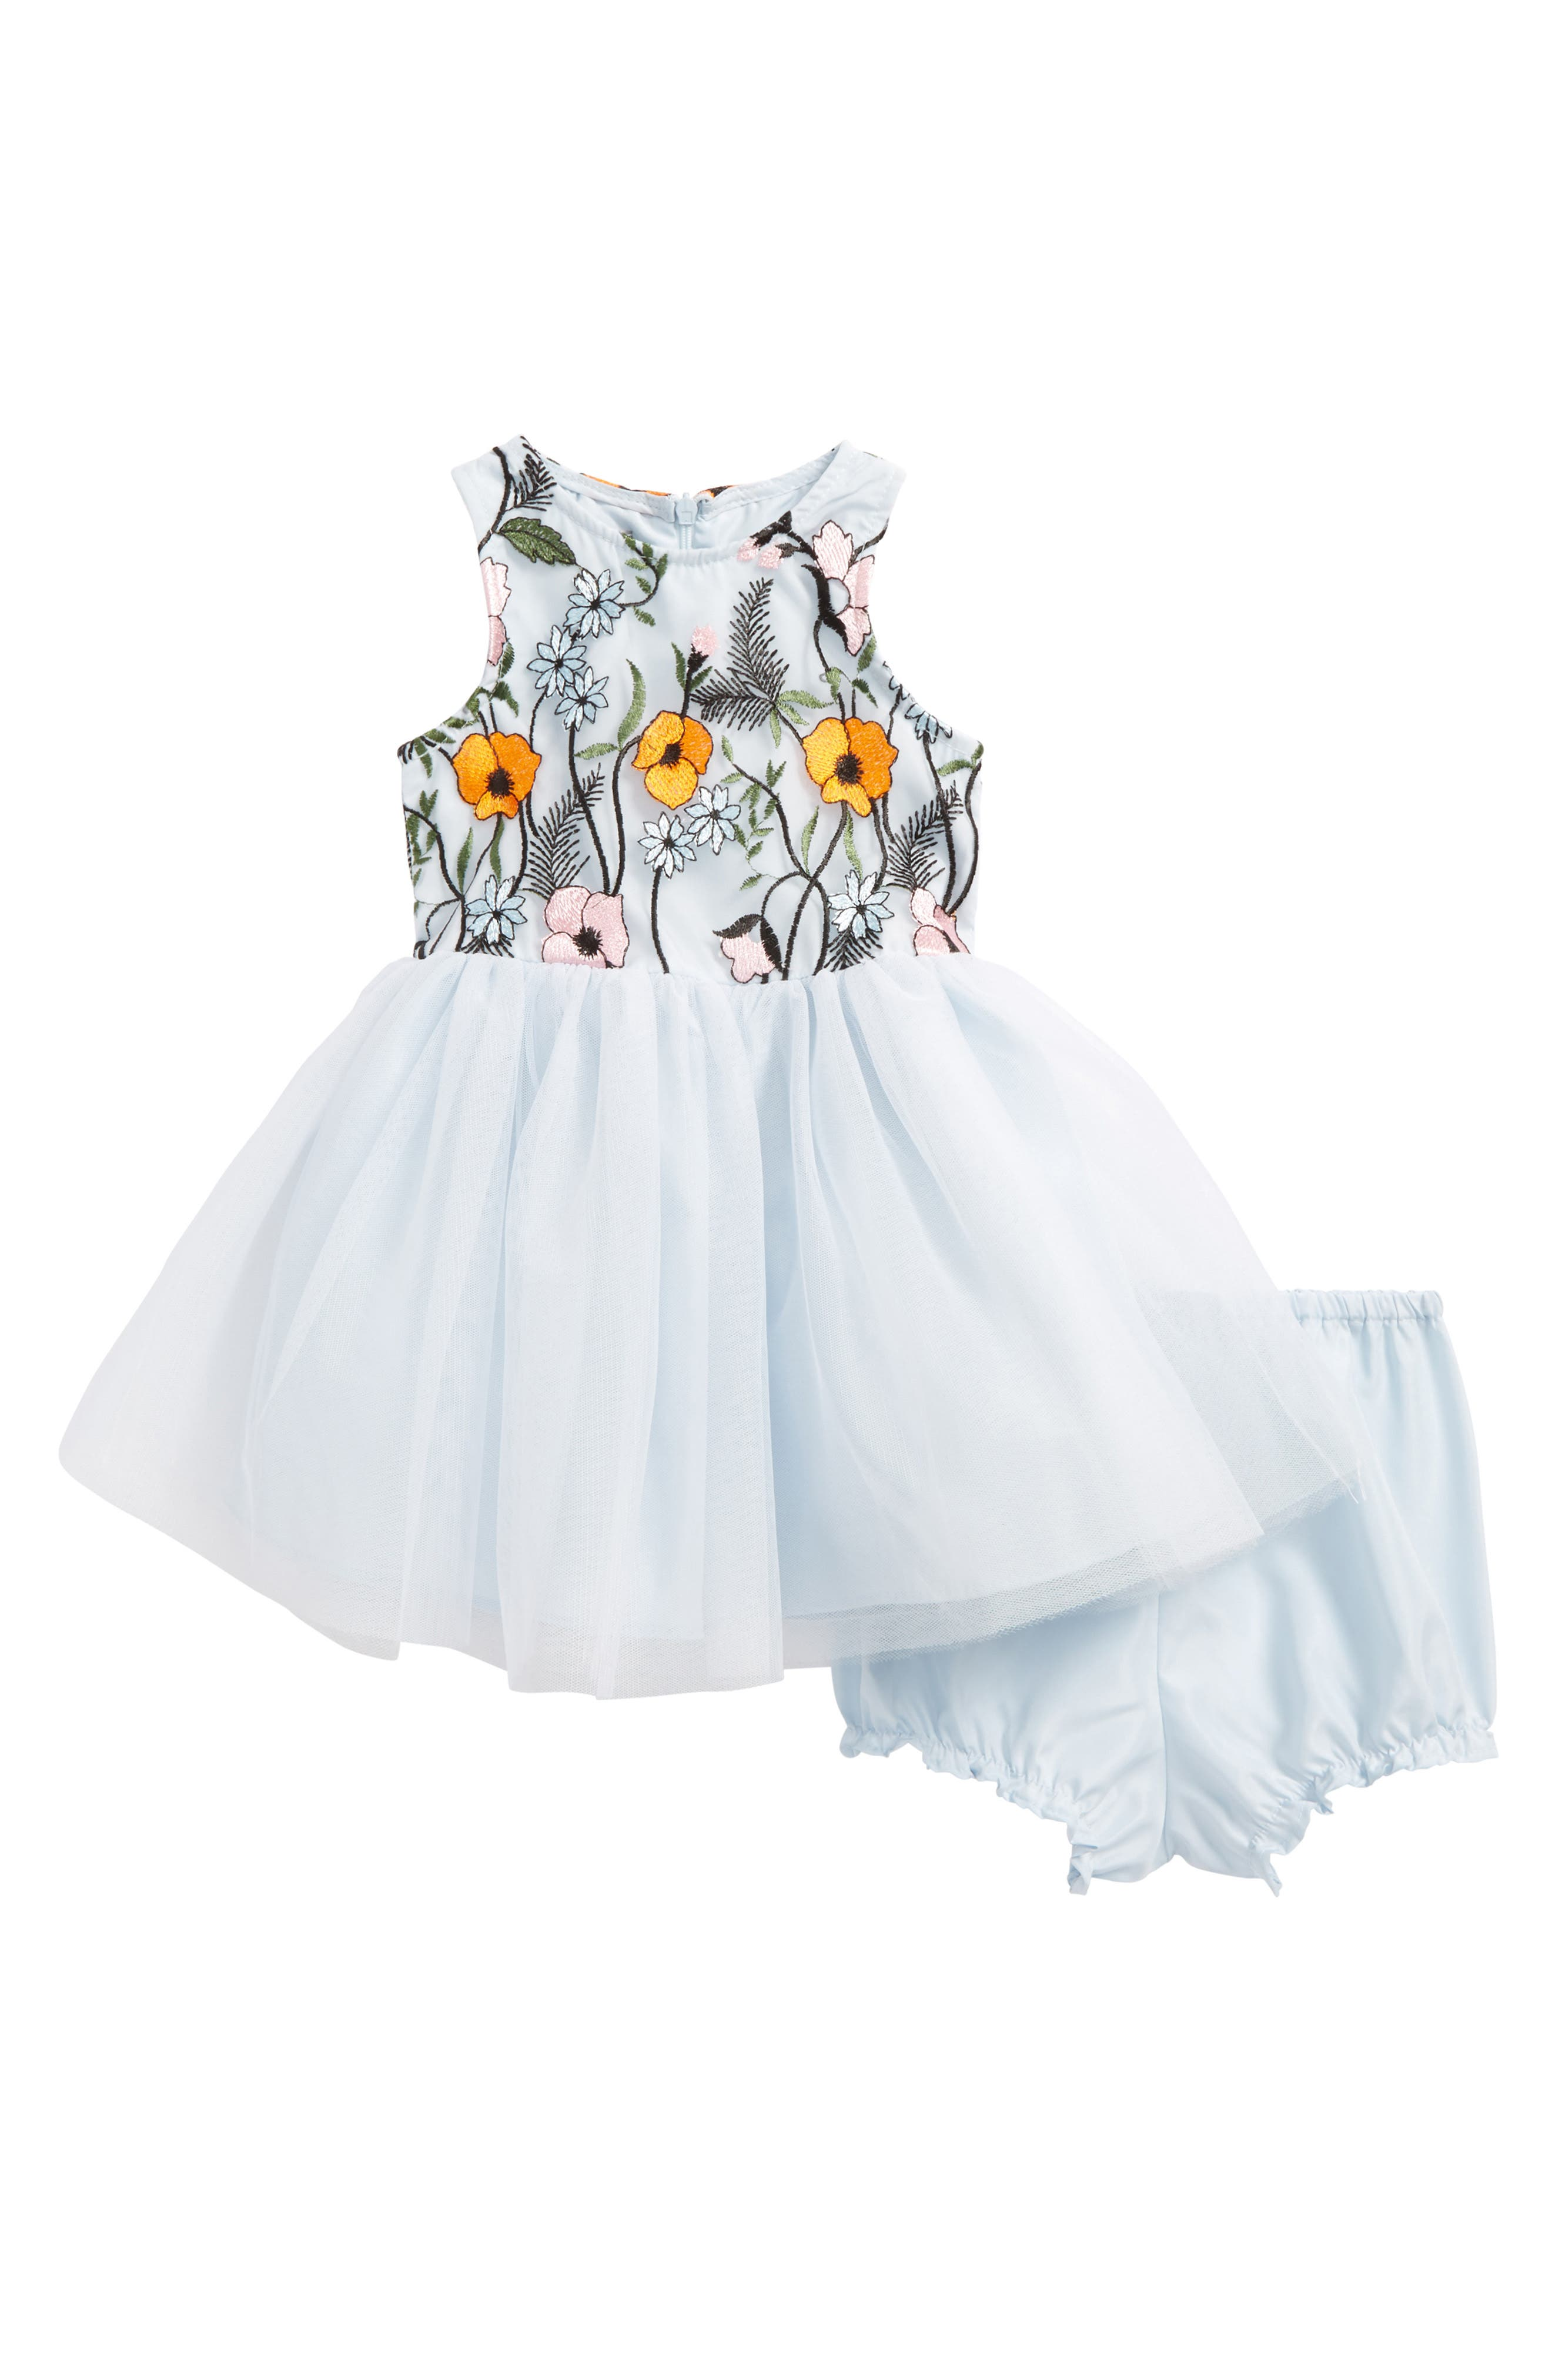 Embroidered Floral Tulle Dress,                         Main,                         color, 460